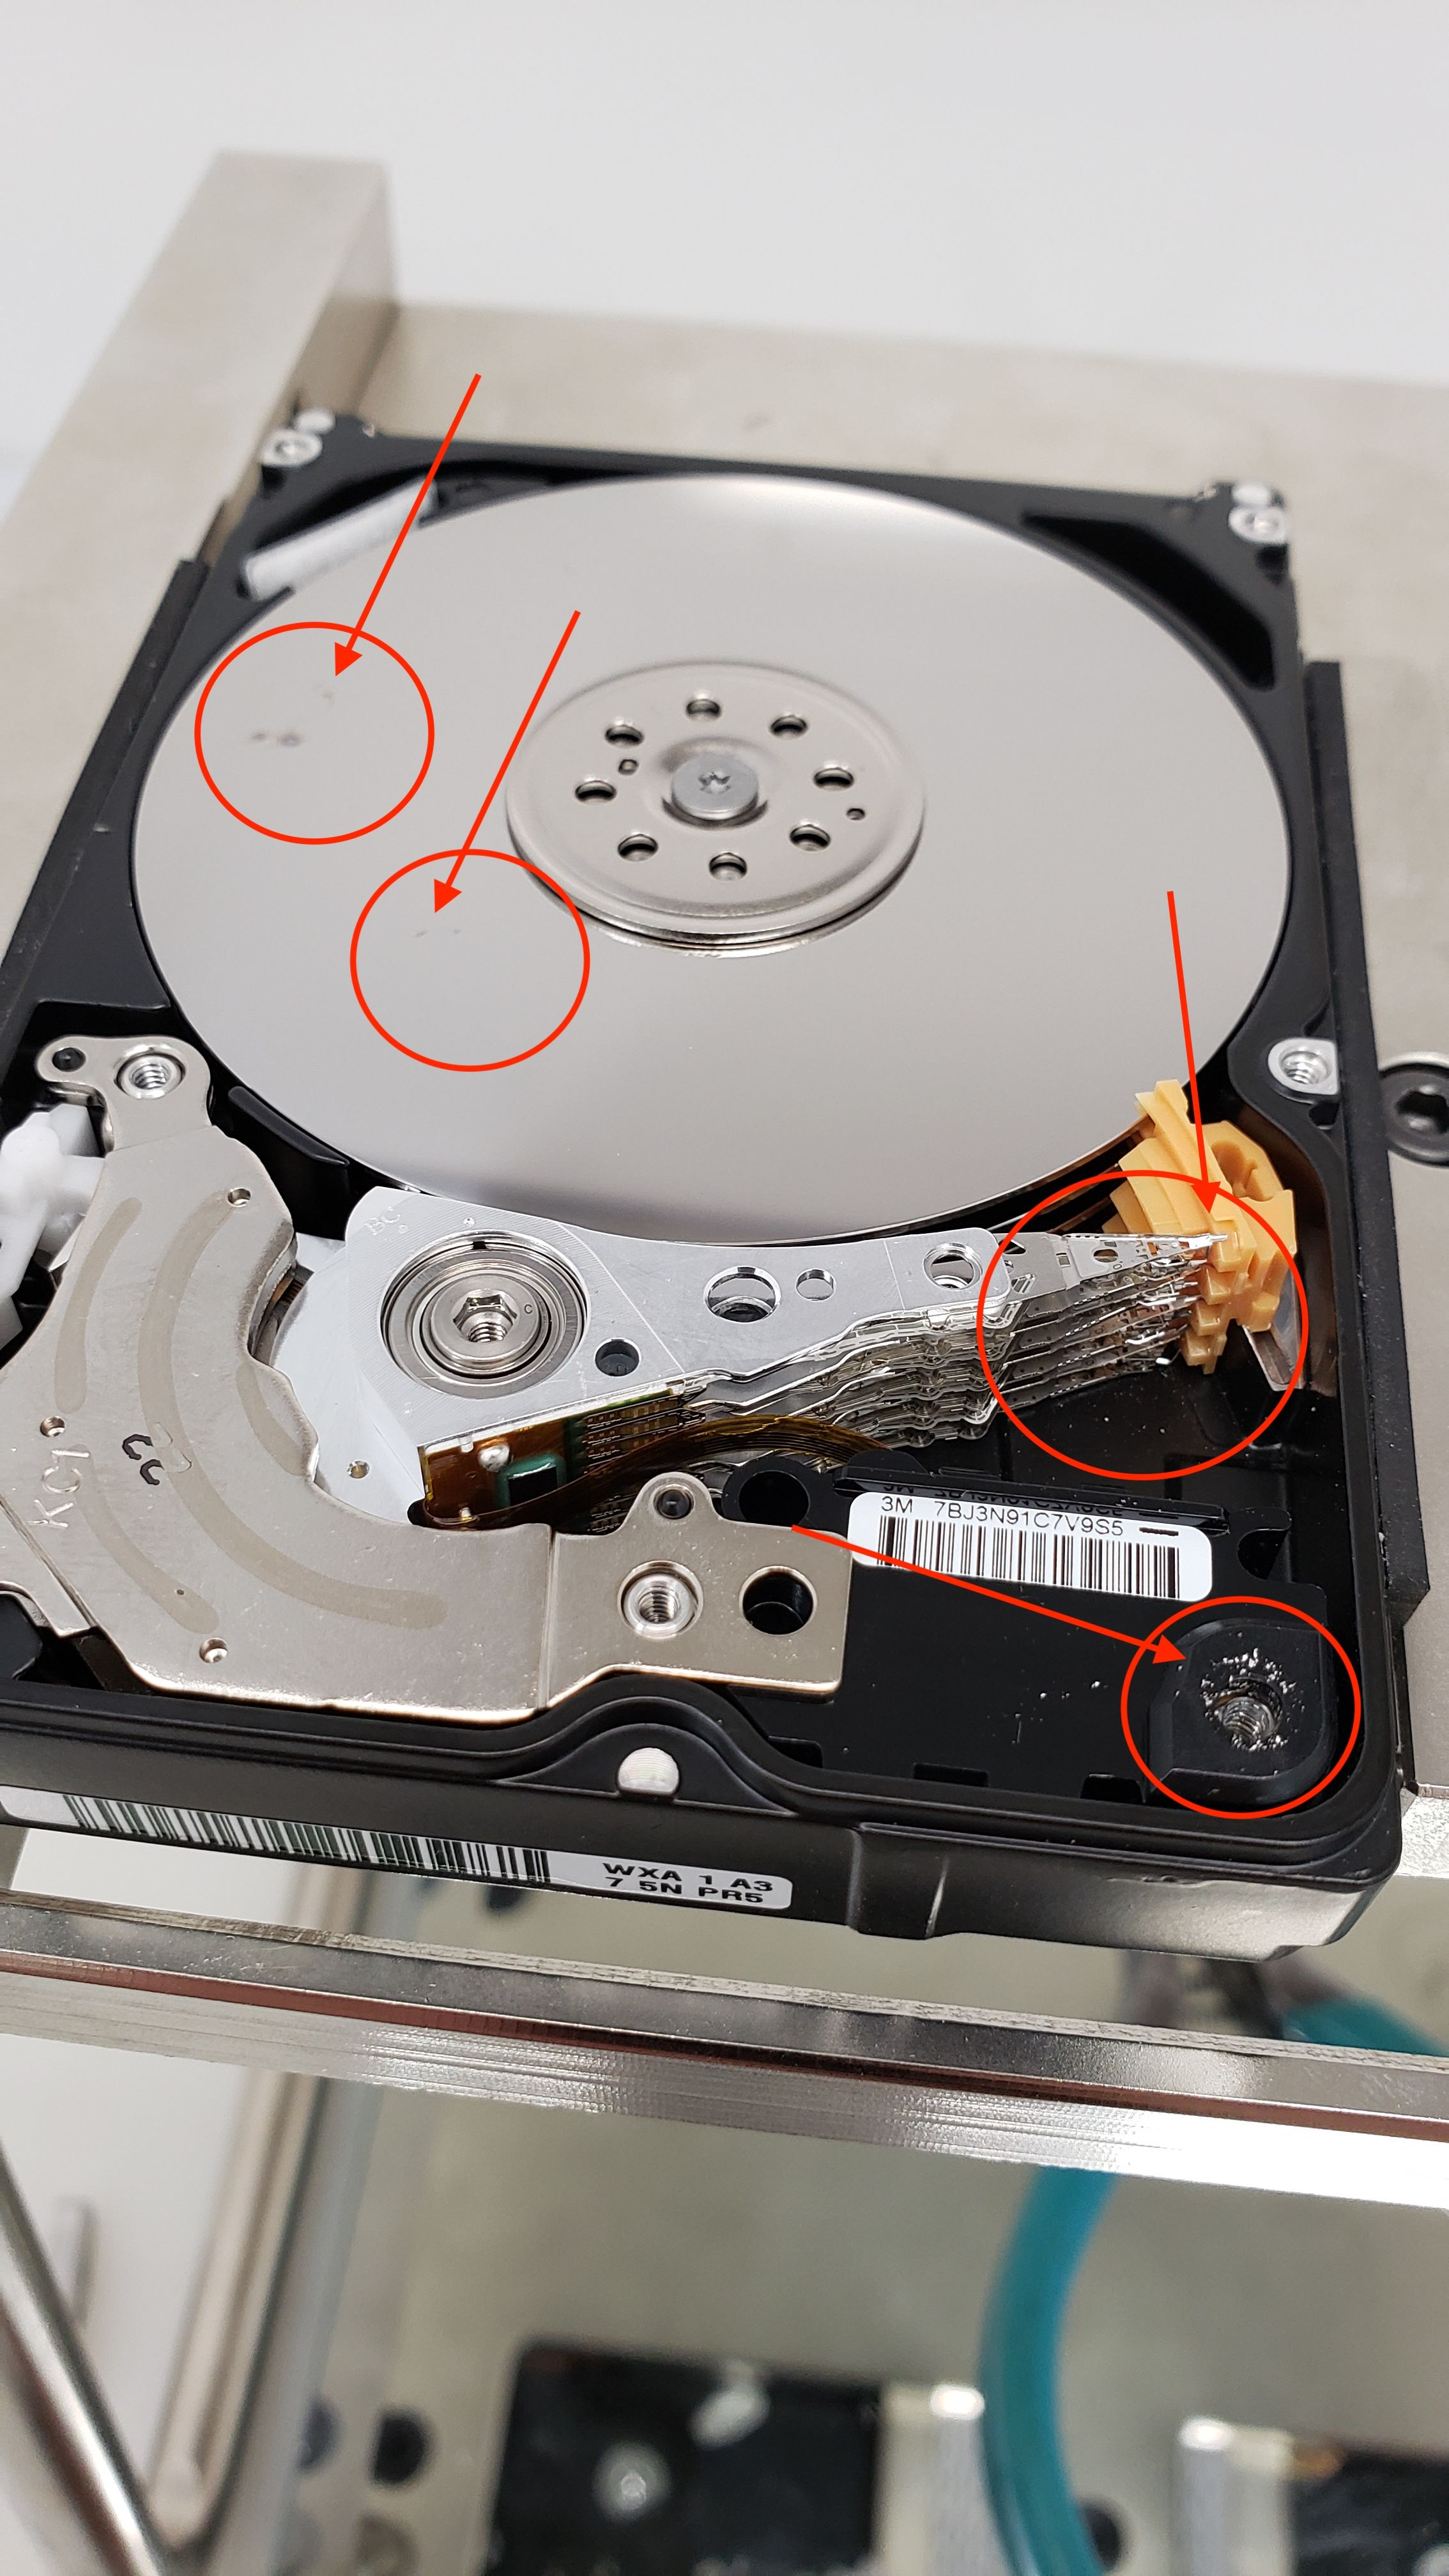 Western Digital Data Recovery Data Recovery Digital Data